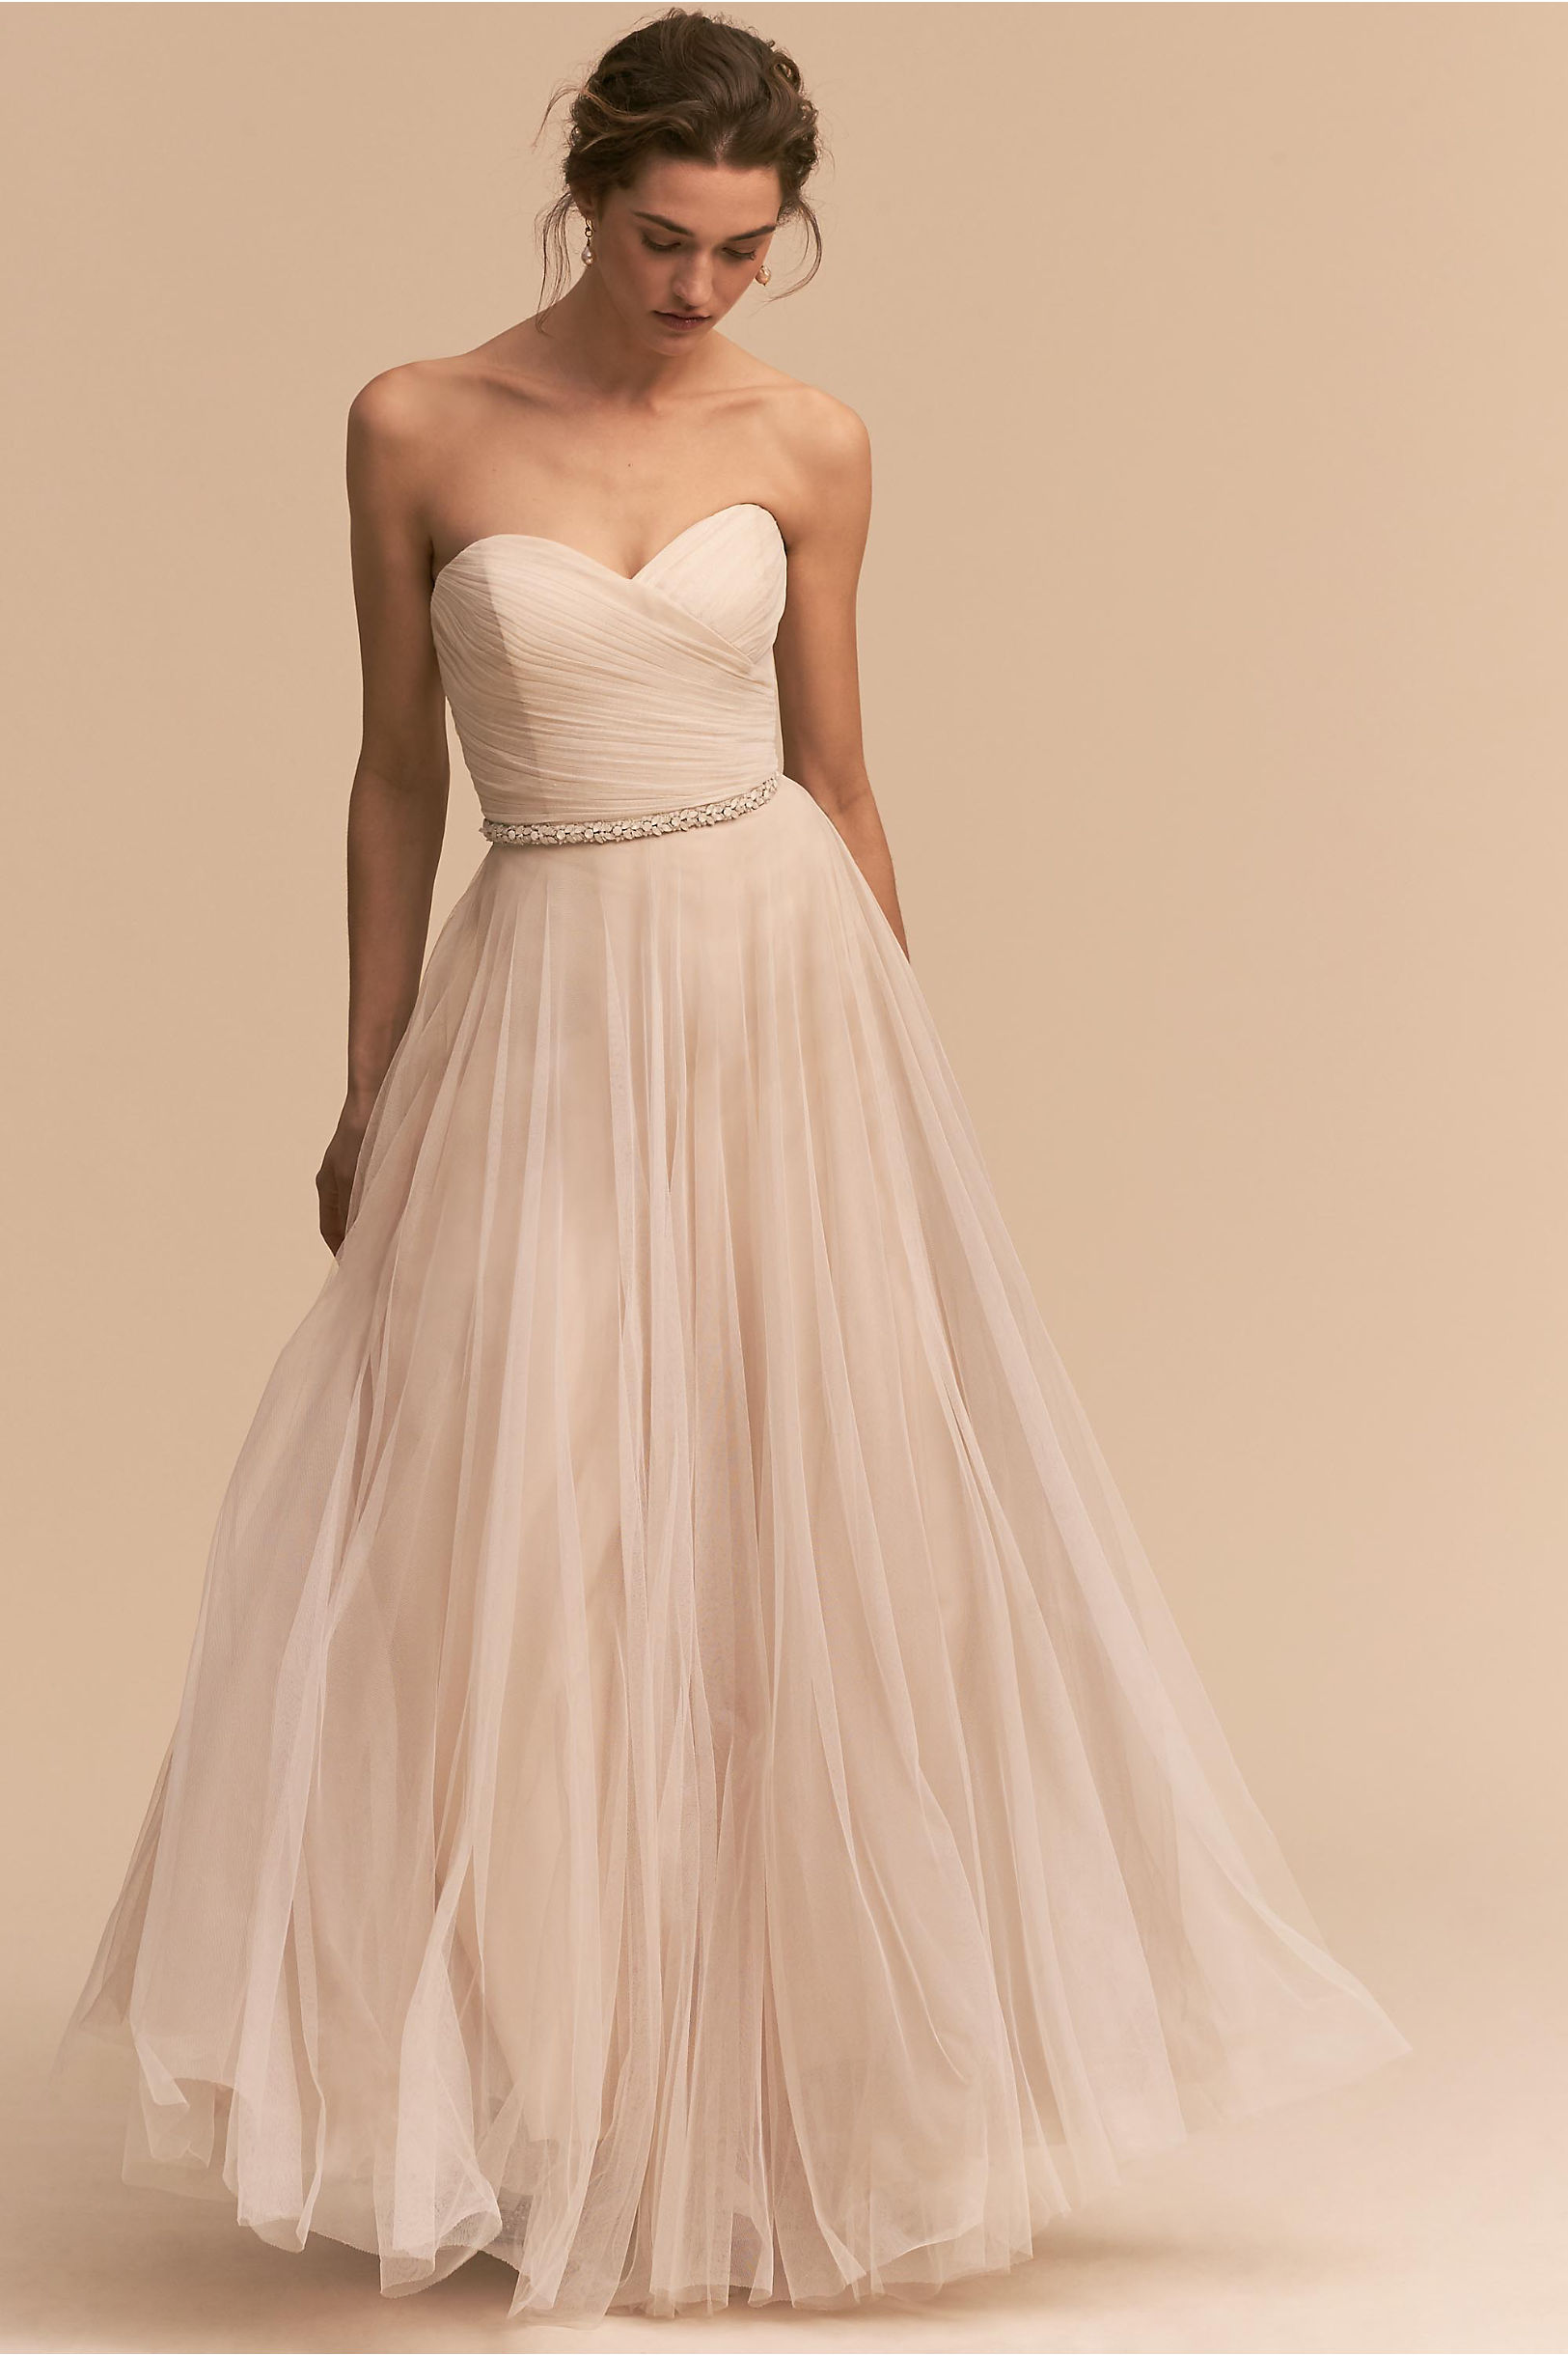 Calla Gown Moonlight In Bride